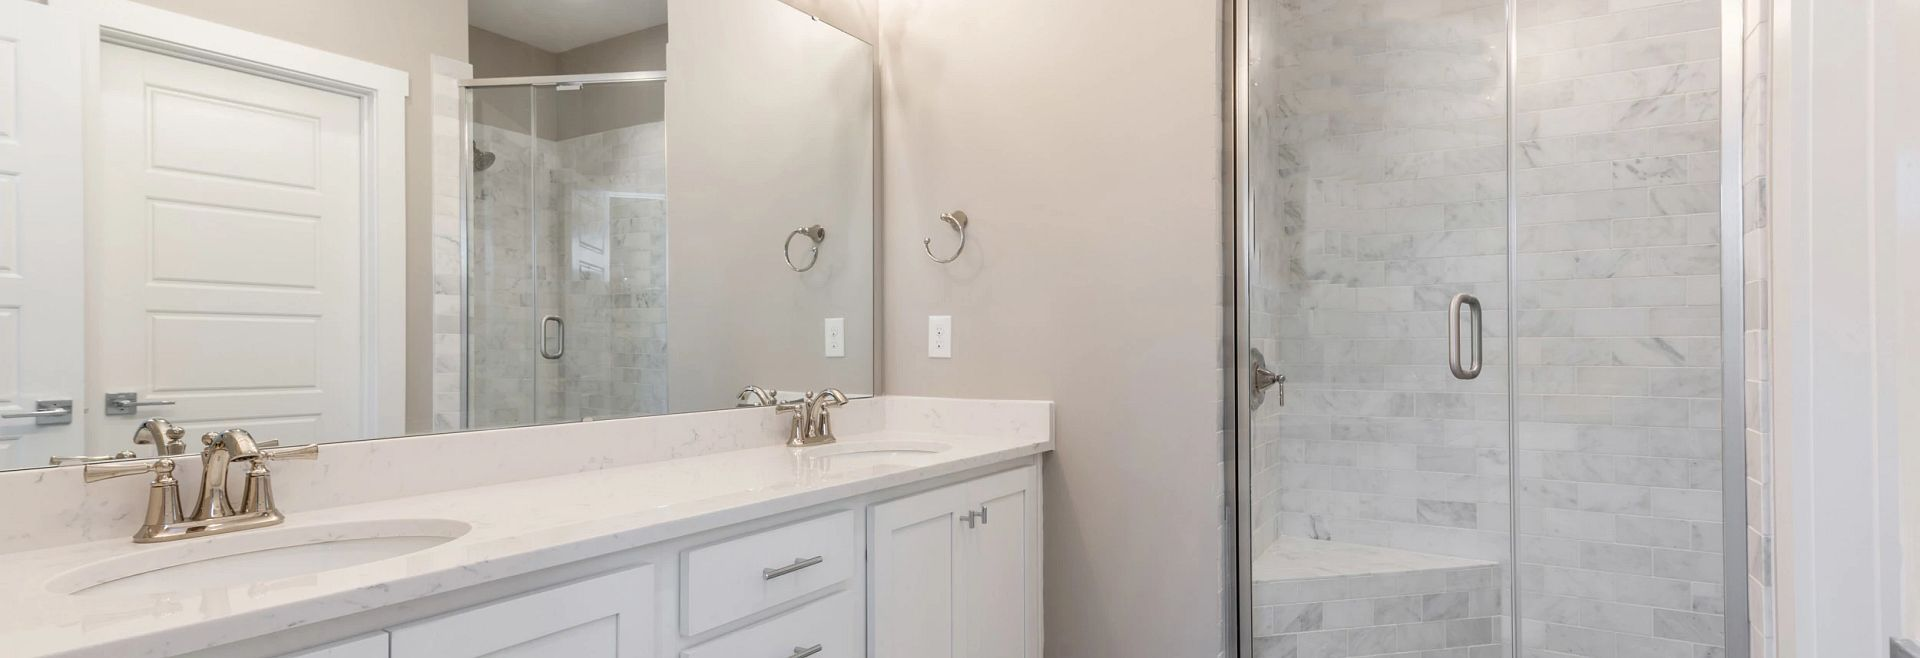 Bathroom featured in the Tribeca By Shea Homes in Charlotte, NC